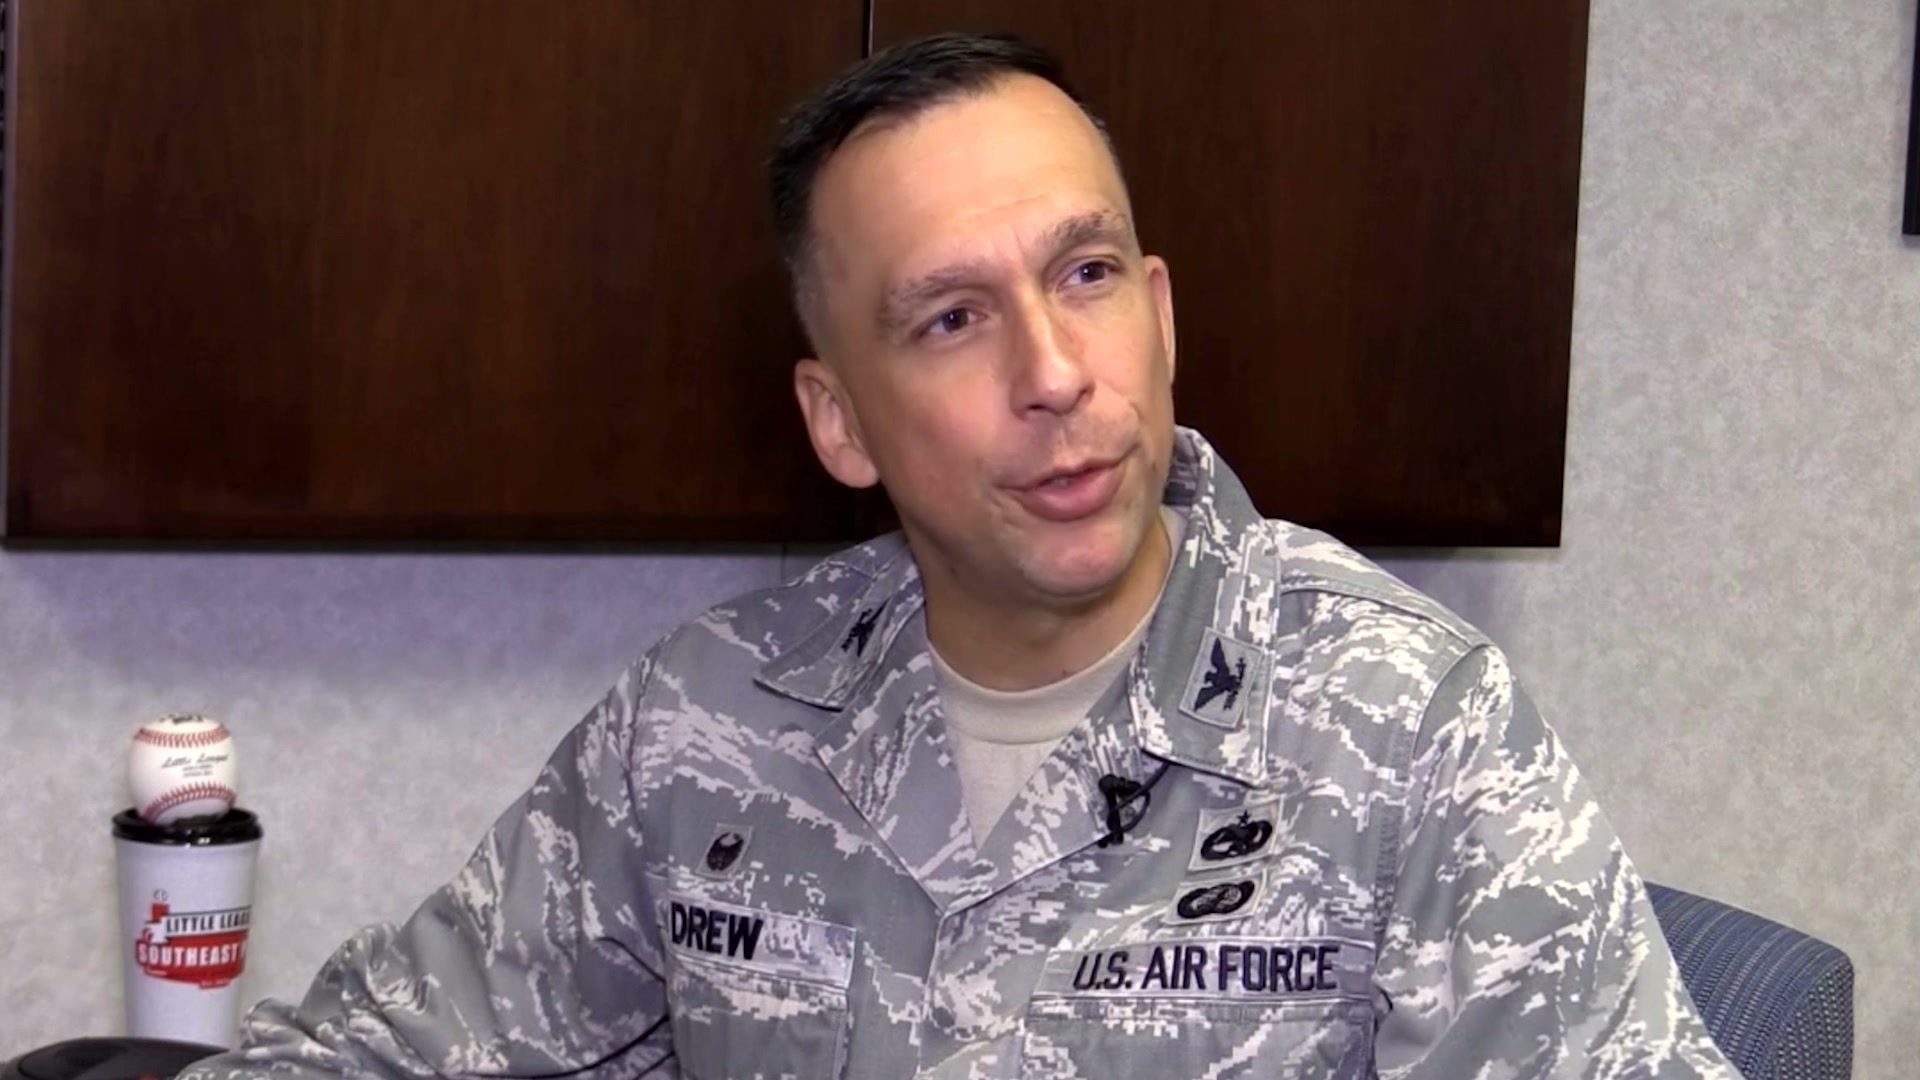 Col. Lyle Drew, Commander, 78th ABW, Robins Air Force Base, Ga., shares his perspectives on the importance of mentorship, Nov. 14, 2018. Air Force Materiel Command shares the impact of mentoring through first-person experiences from its leaders. (U.S. Air Force Video by Airman 1st Class Emily Woodring)